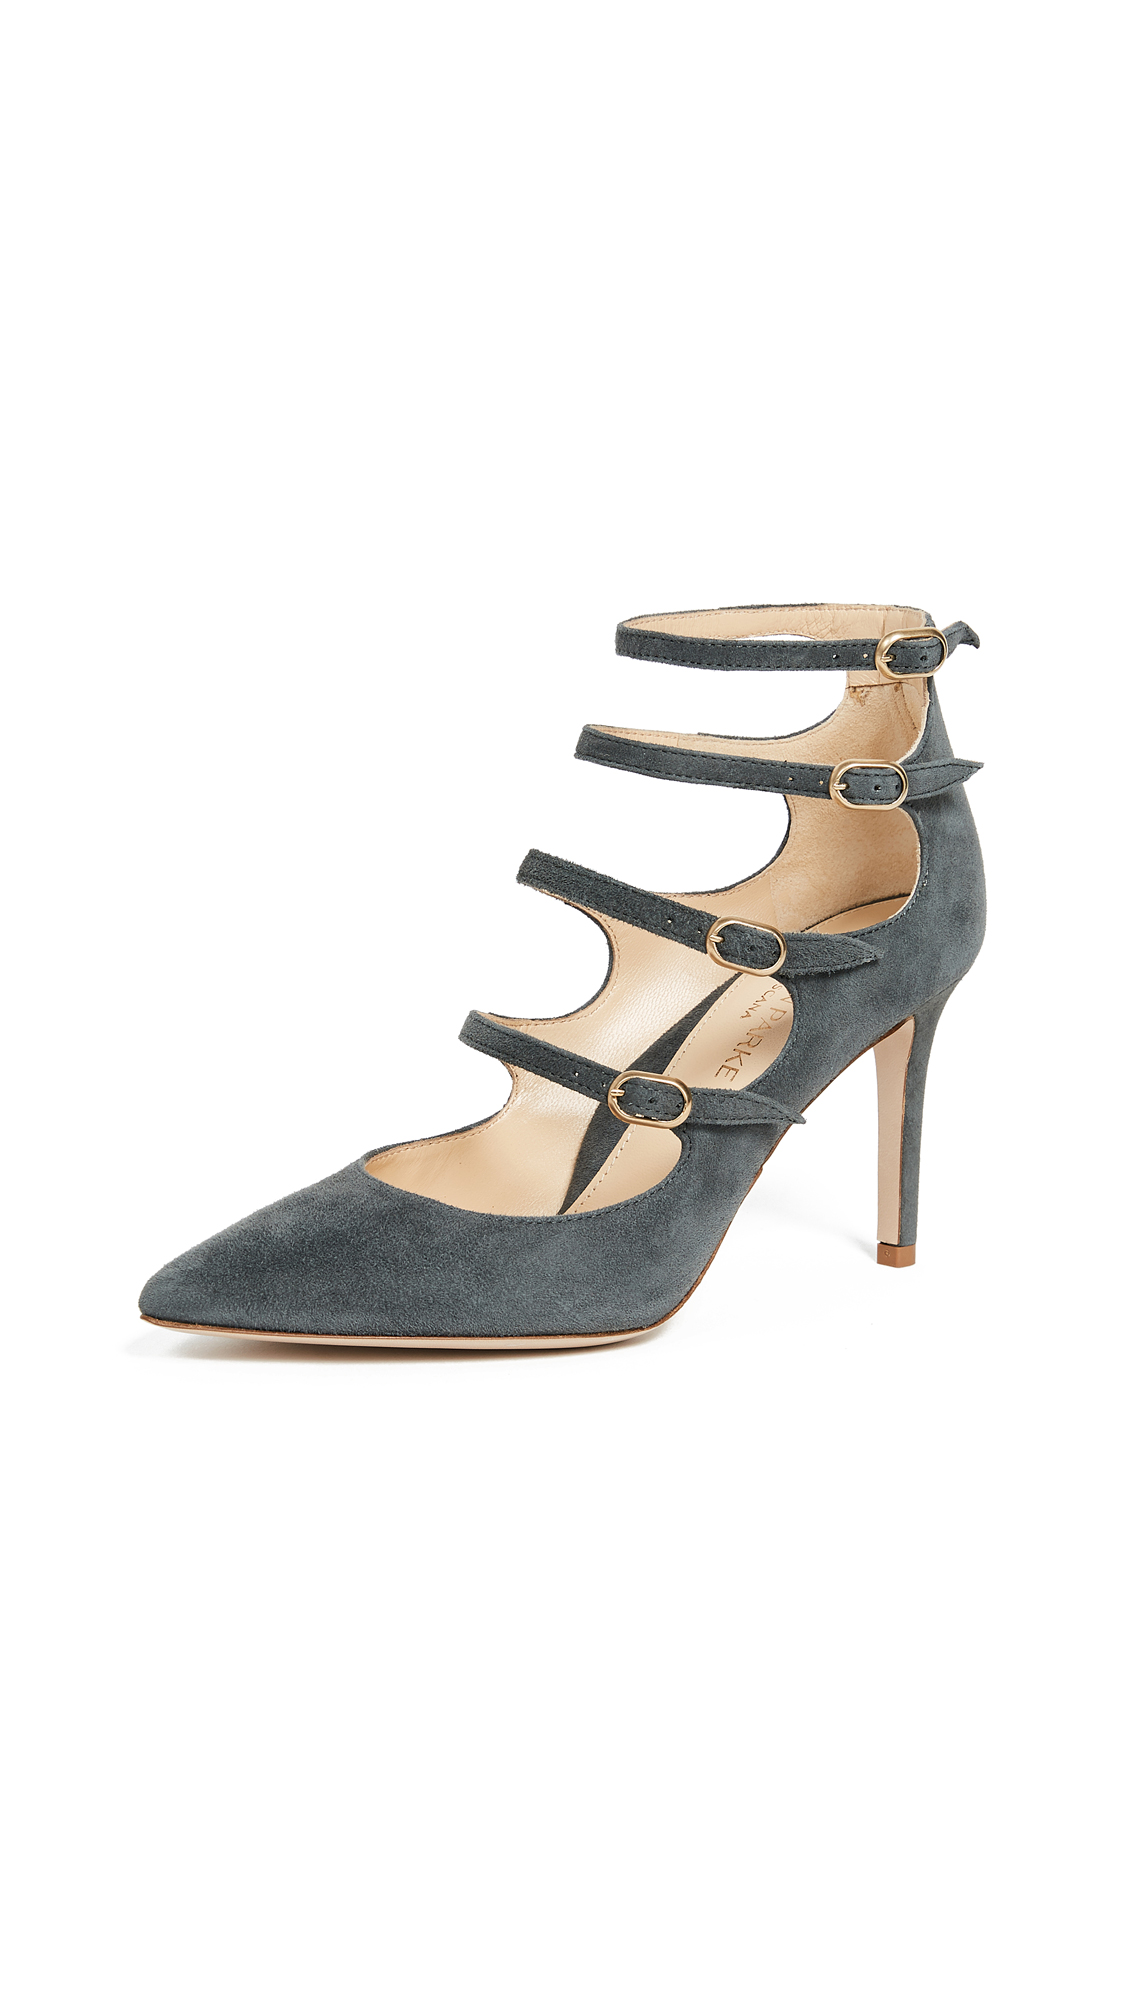 Marion Parke Mitchell Pumps - Stone